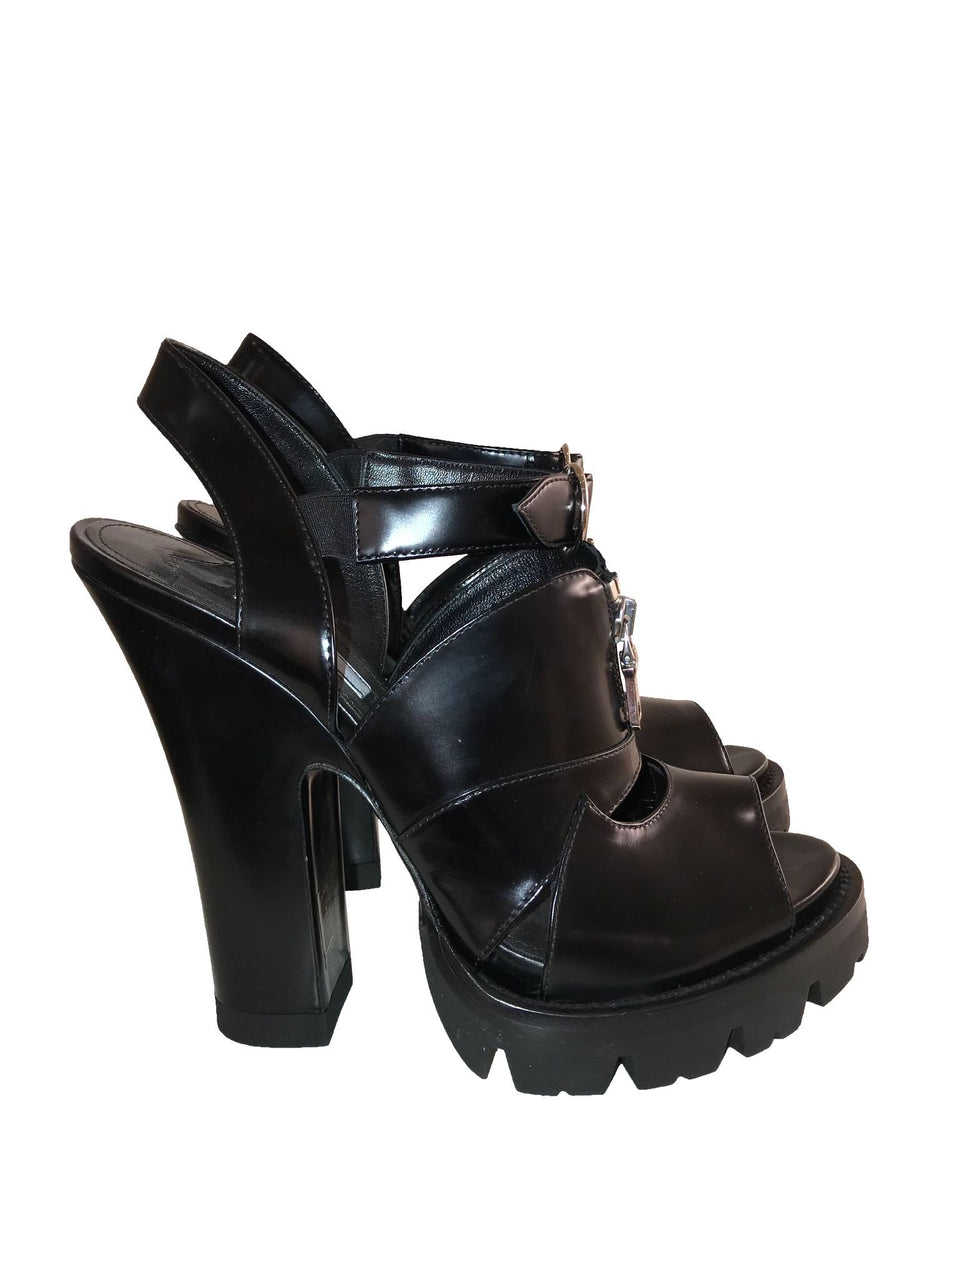 Chunky Leather Sandals w/ Zipper